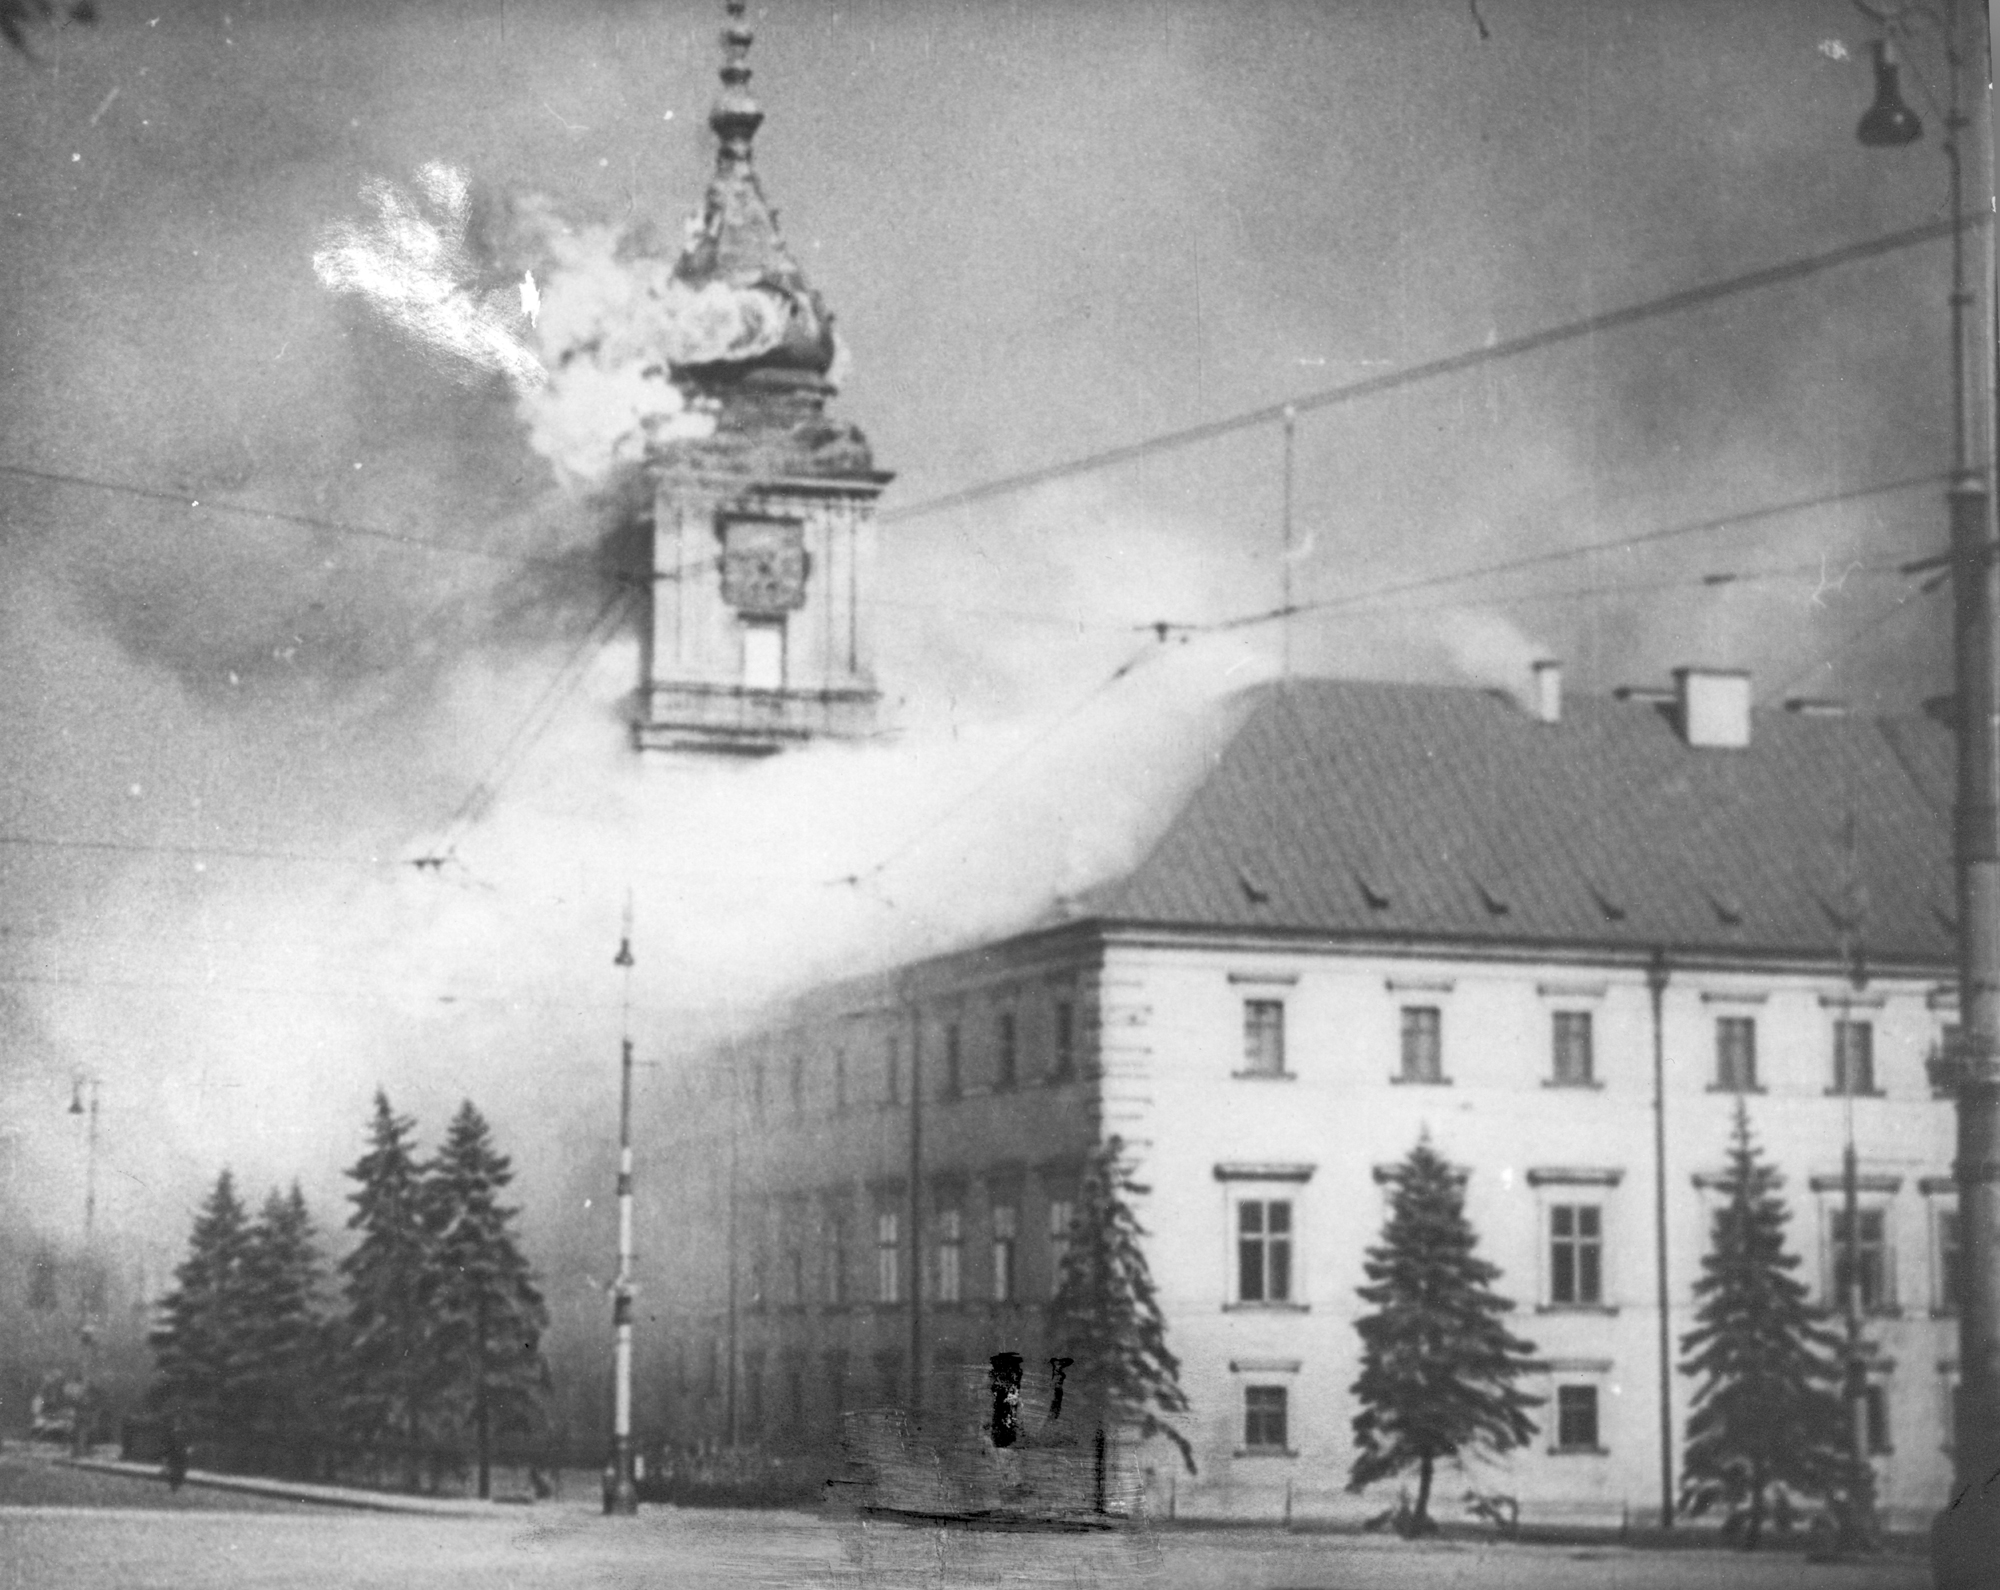 Photo of the Royal Castle in Warsaw on fire after being shelled by the Germans on 17 September.